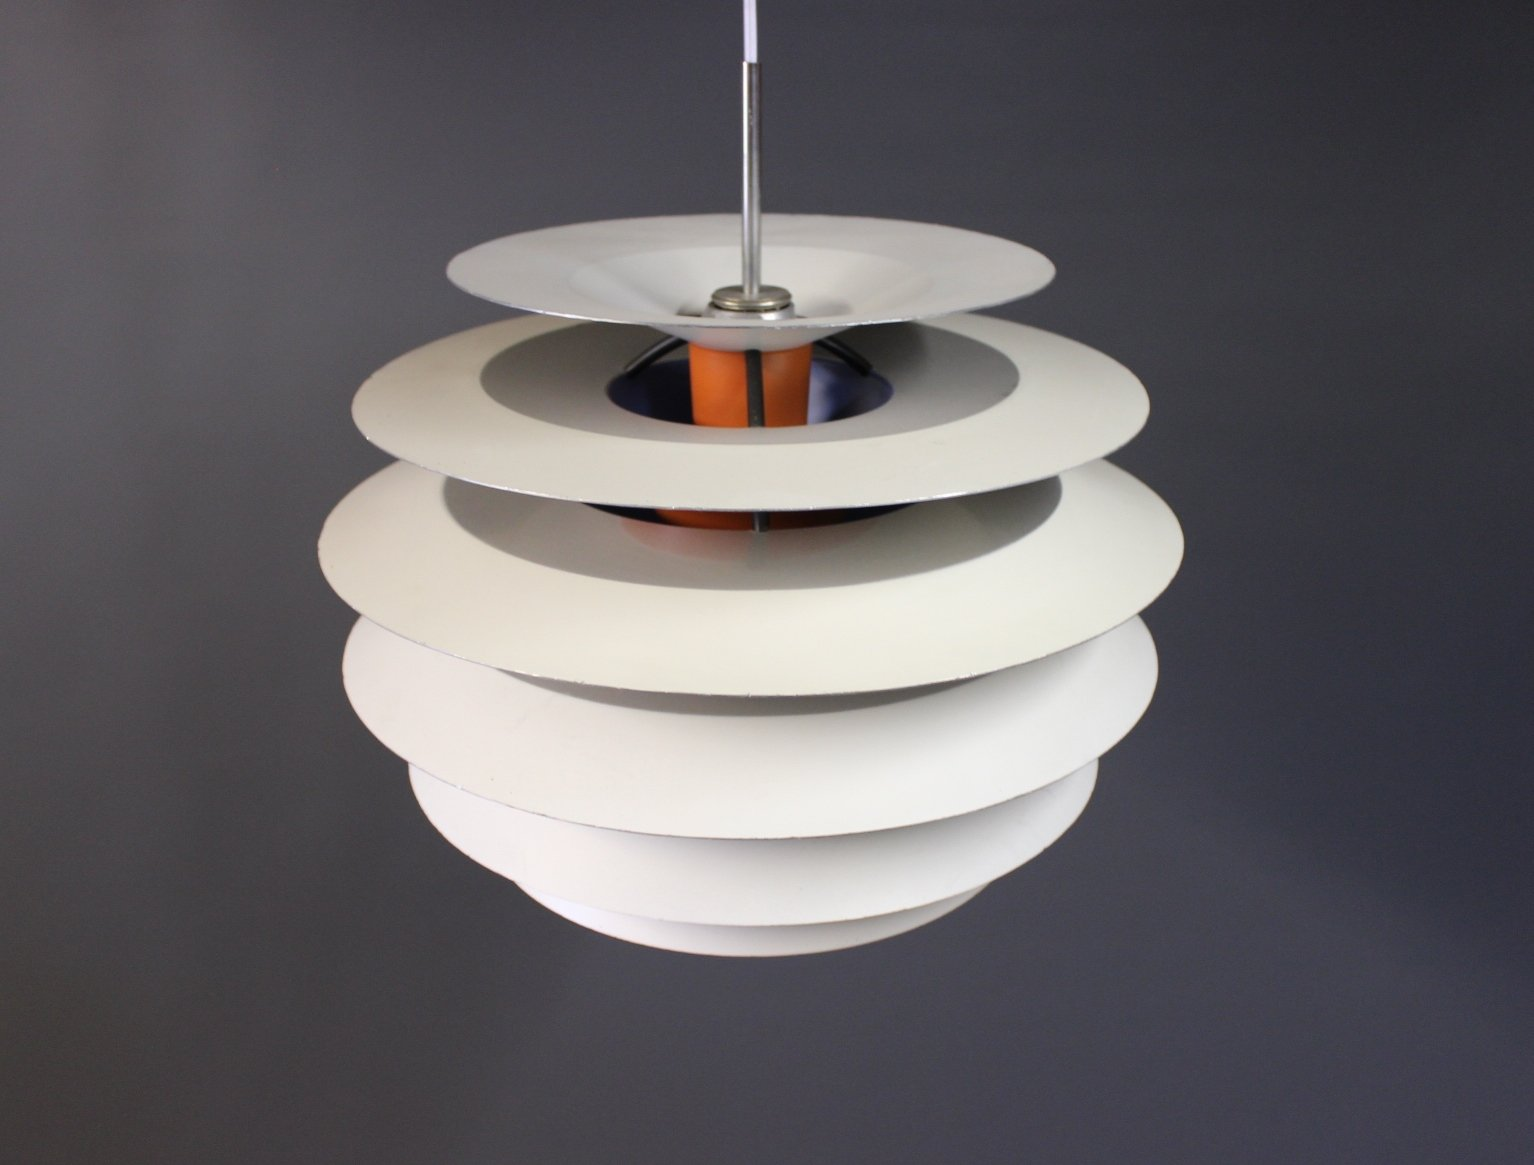 manufactured home price list with Danish Ph Contrast L  By Poul Henningsen For Louis Poulsen 1960s 1 on 472233000904000 moreover 5mm White Led L  Light Set 20cm Prewired Lead 24v Dc p503 furthermore Royal Worcester Morris And Co Strawberry Thief Chocolate Slate additionally Lb Works  plete Body Kit Mpn Do Cha Kit Frp furthermore Easy Torque Sf Handle With Torx Blade.